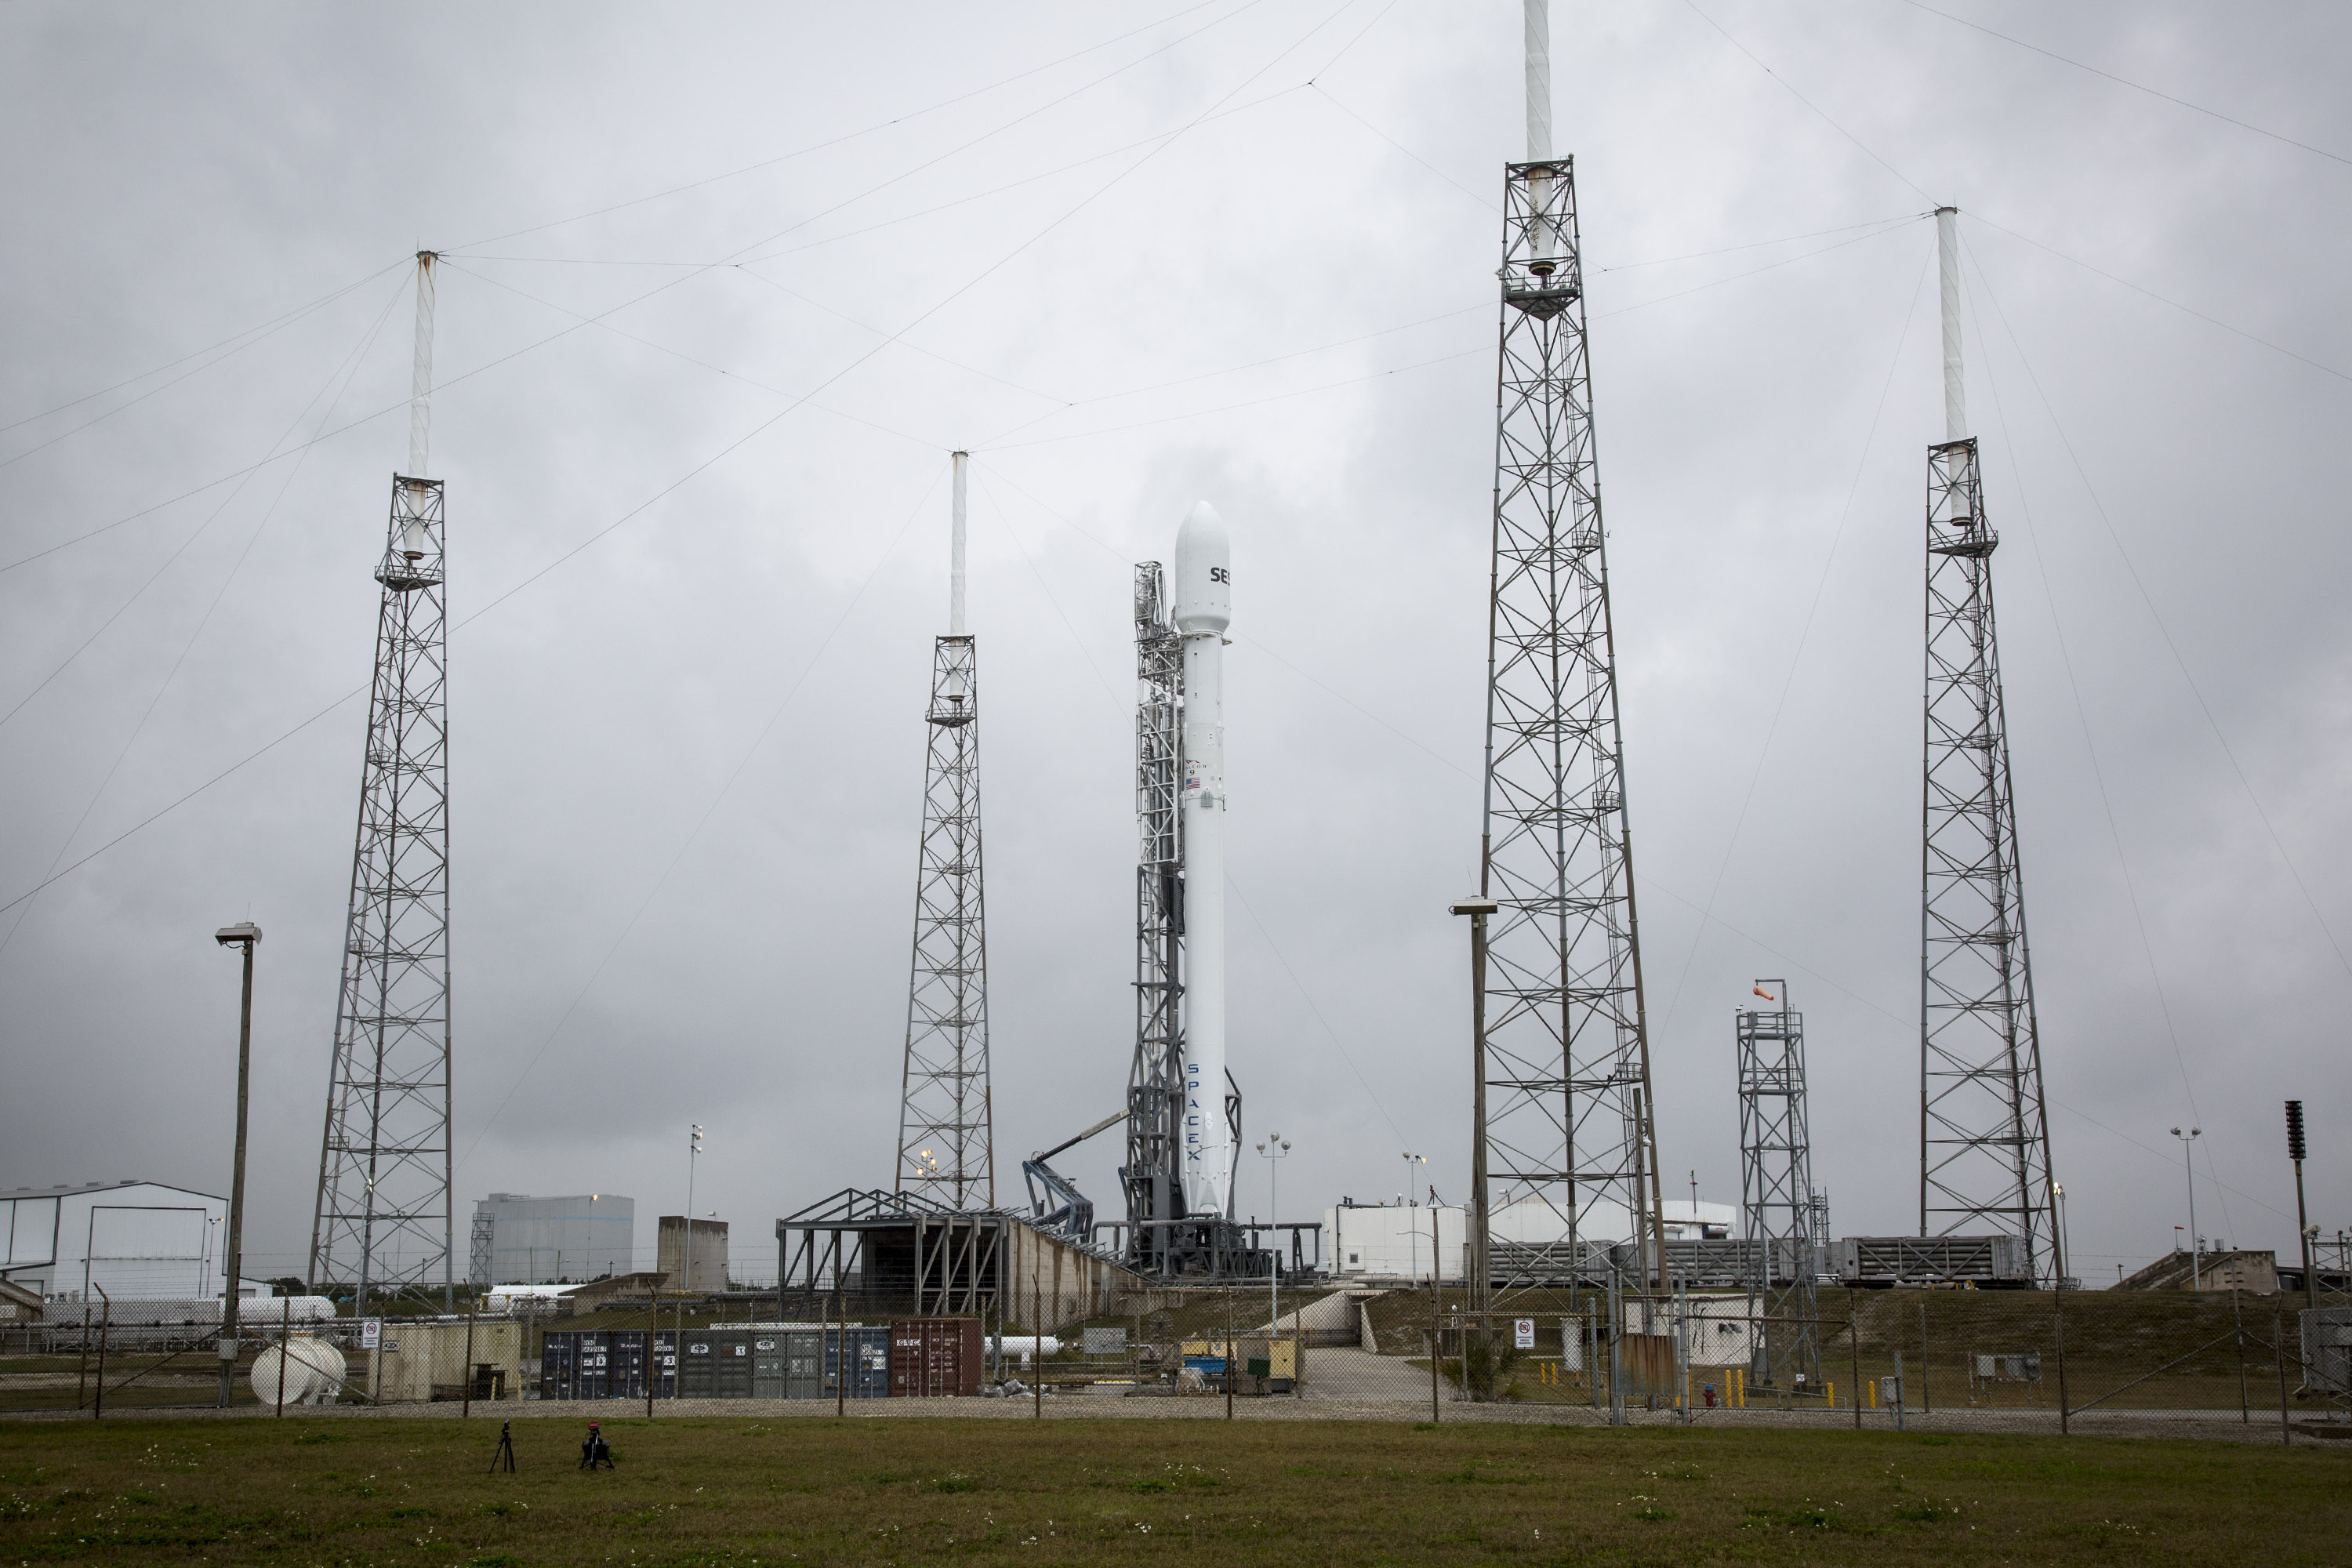 Weather looks good for today's planned SpaceX launch